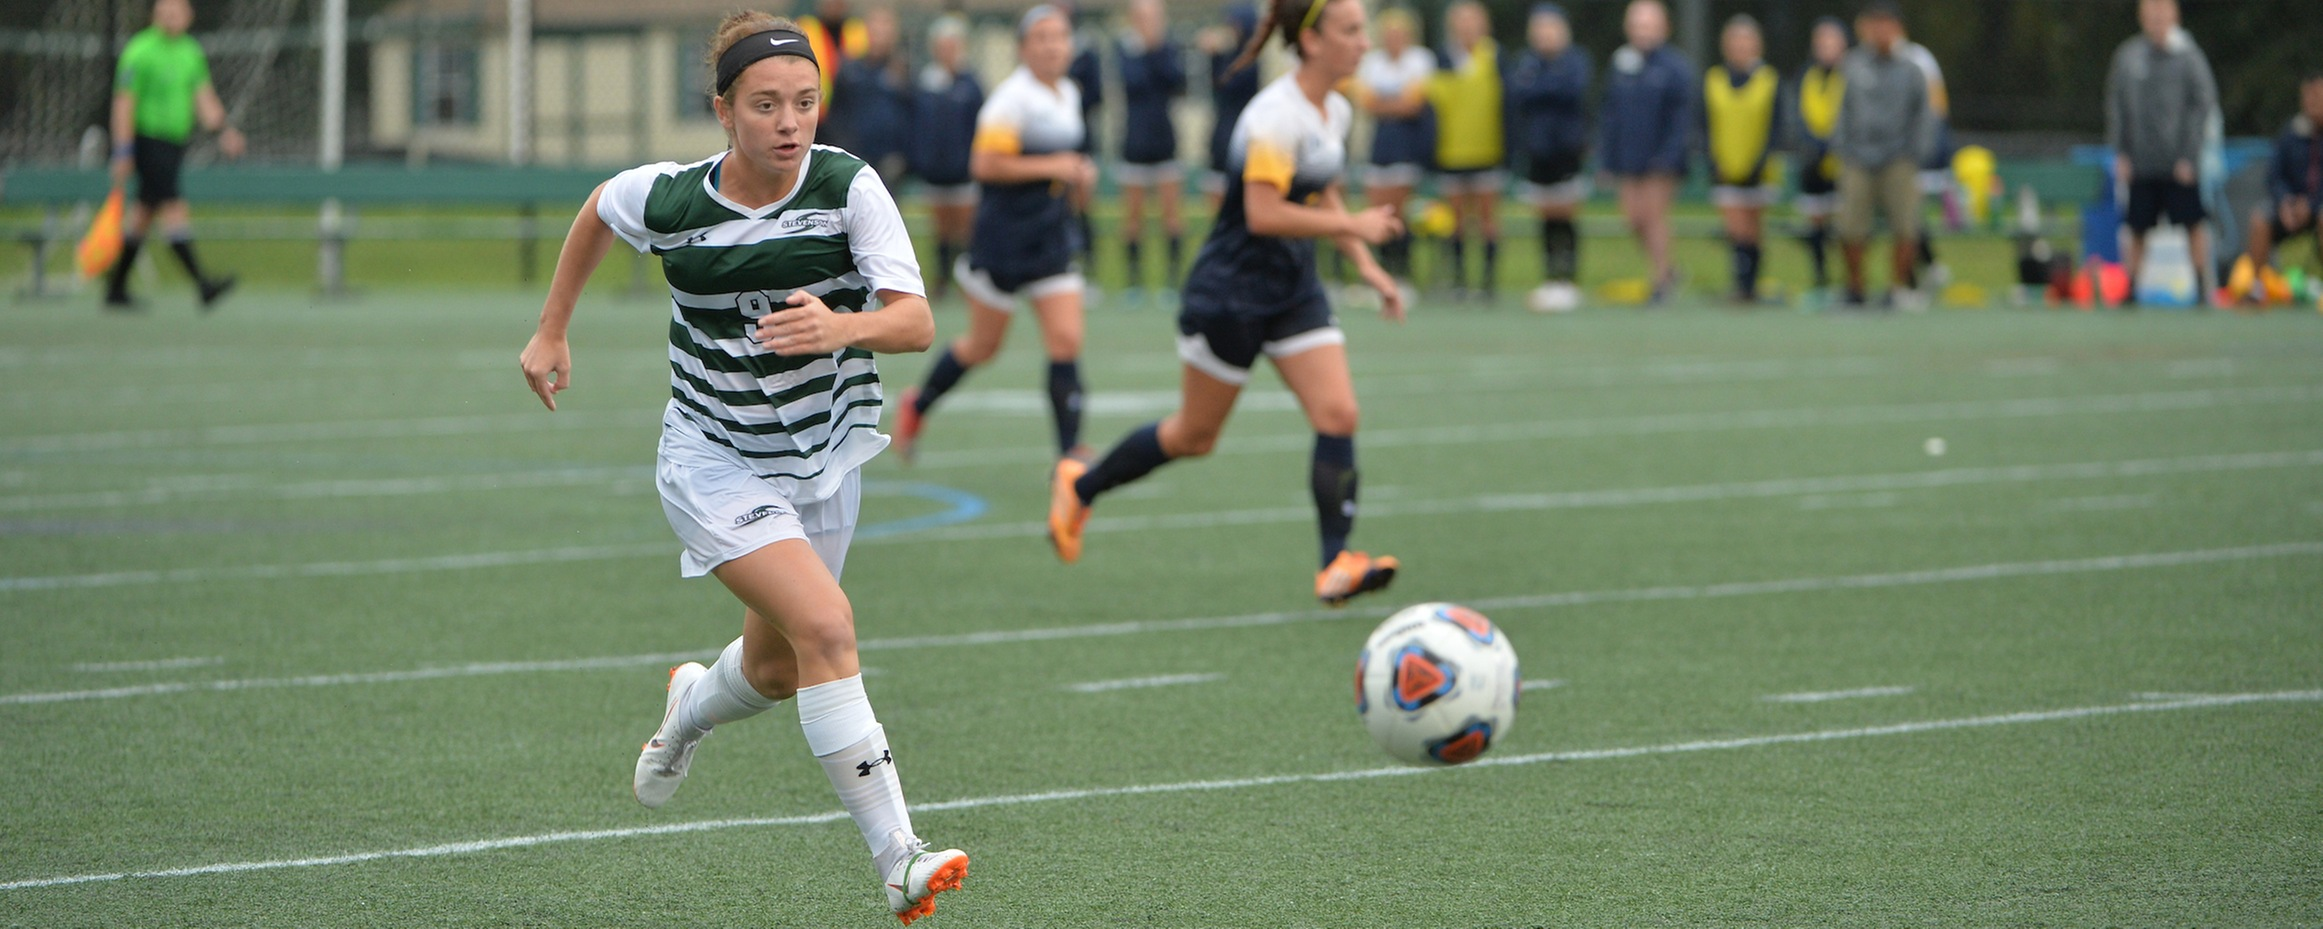 Late Penalty Kick Lifts St. Mary's (Md.) Over Mustangs